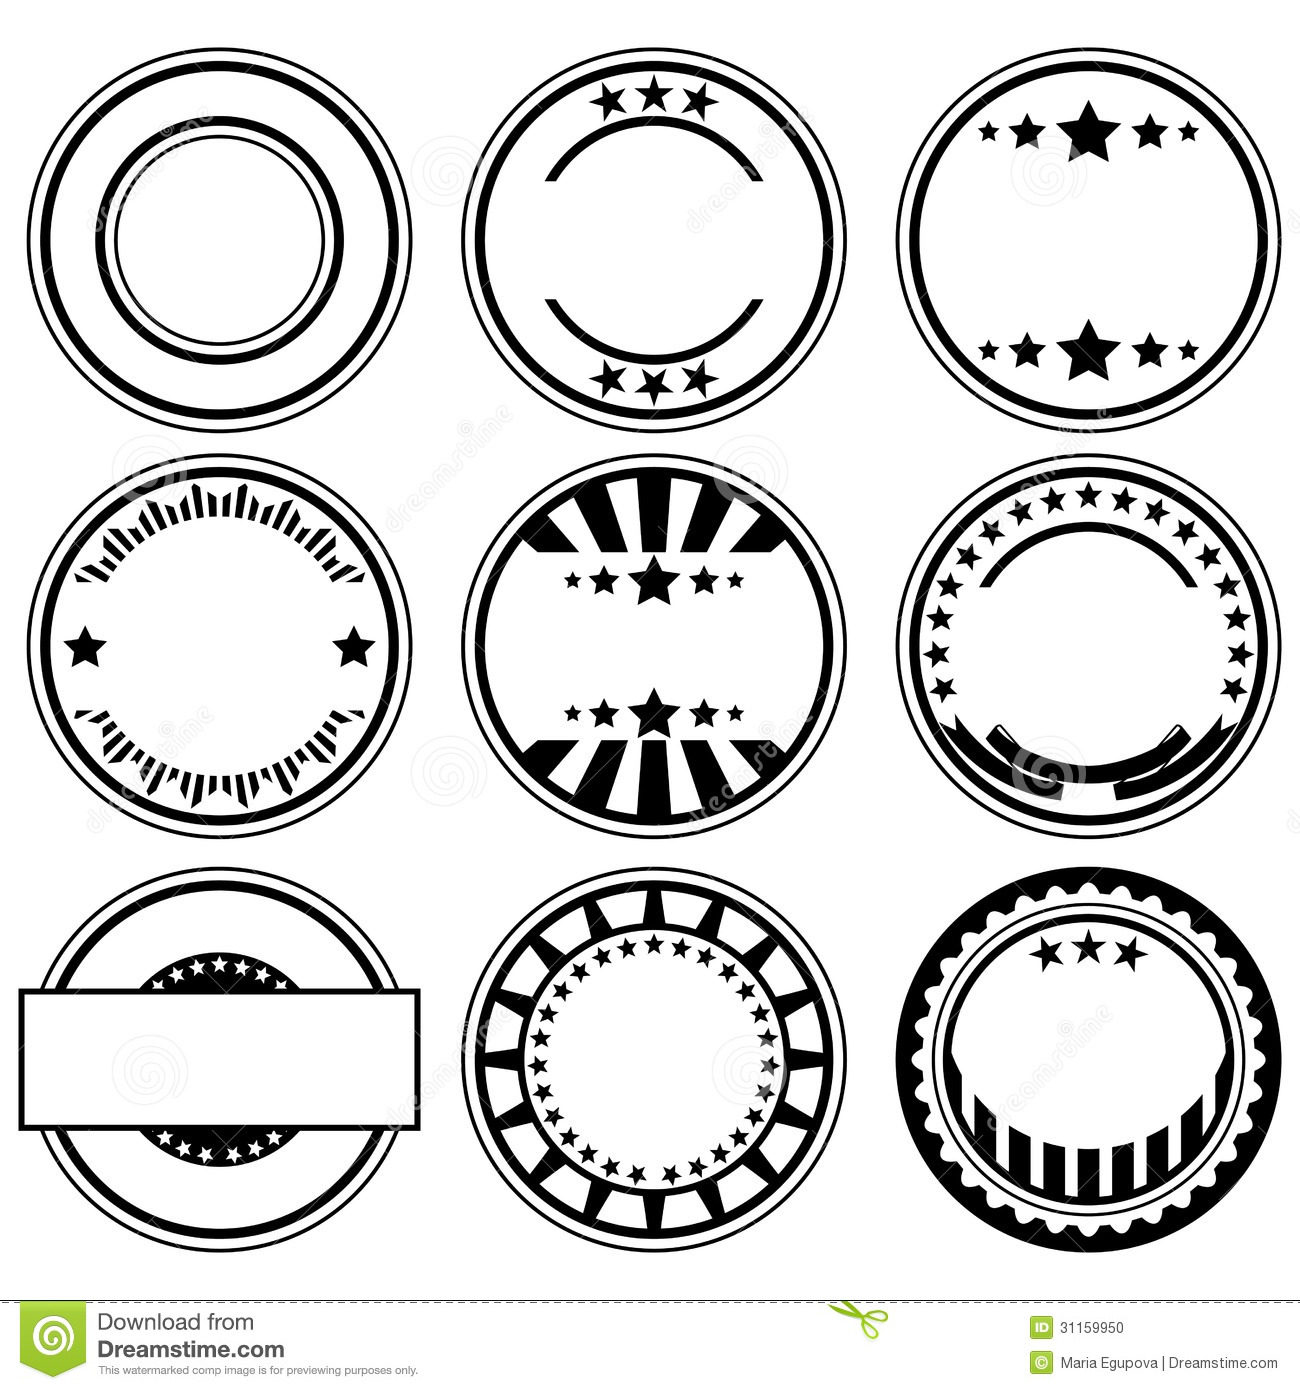 Stock Photo Rubber St s Vector Set Empty Space Text Image31159950 also Illustration Stock Fossile De Mollusques Et Crustac C3 A9s D Ammonite Image48958446 furthermore 4148 as well 18pots Pan besides More Requests. on index cards